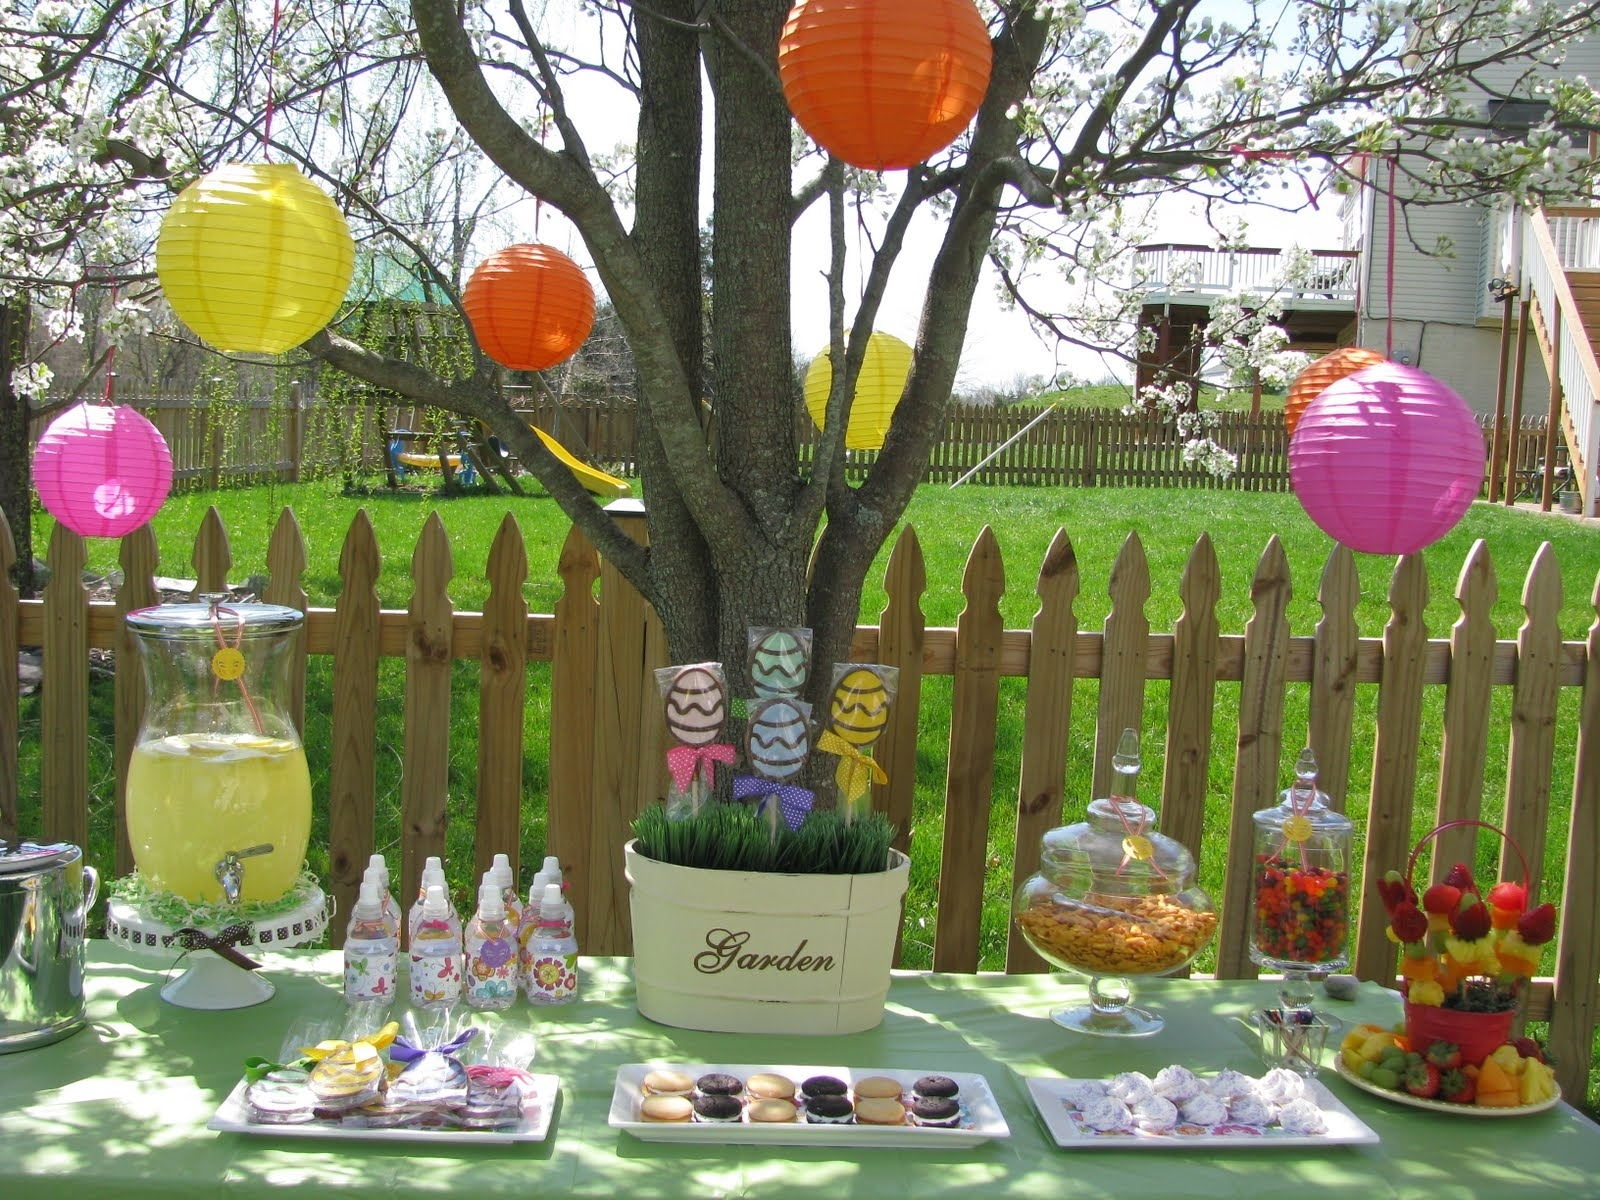 Captivating Outdoor Easter Dessert Table Decoration With Colorful Throughout Colorful Outdoor Lanterns (View 5 of 20)